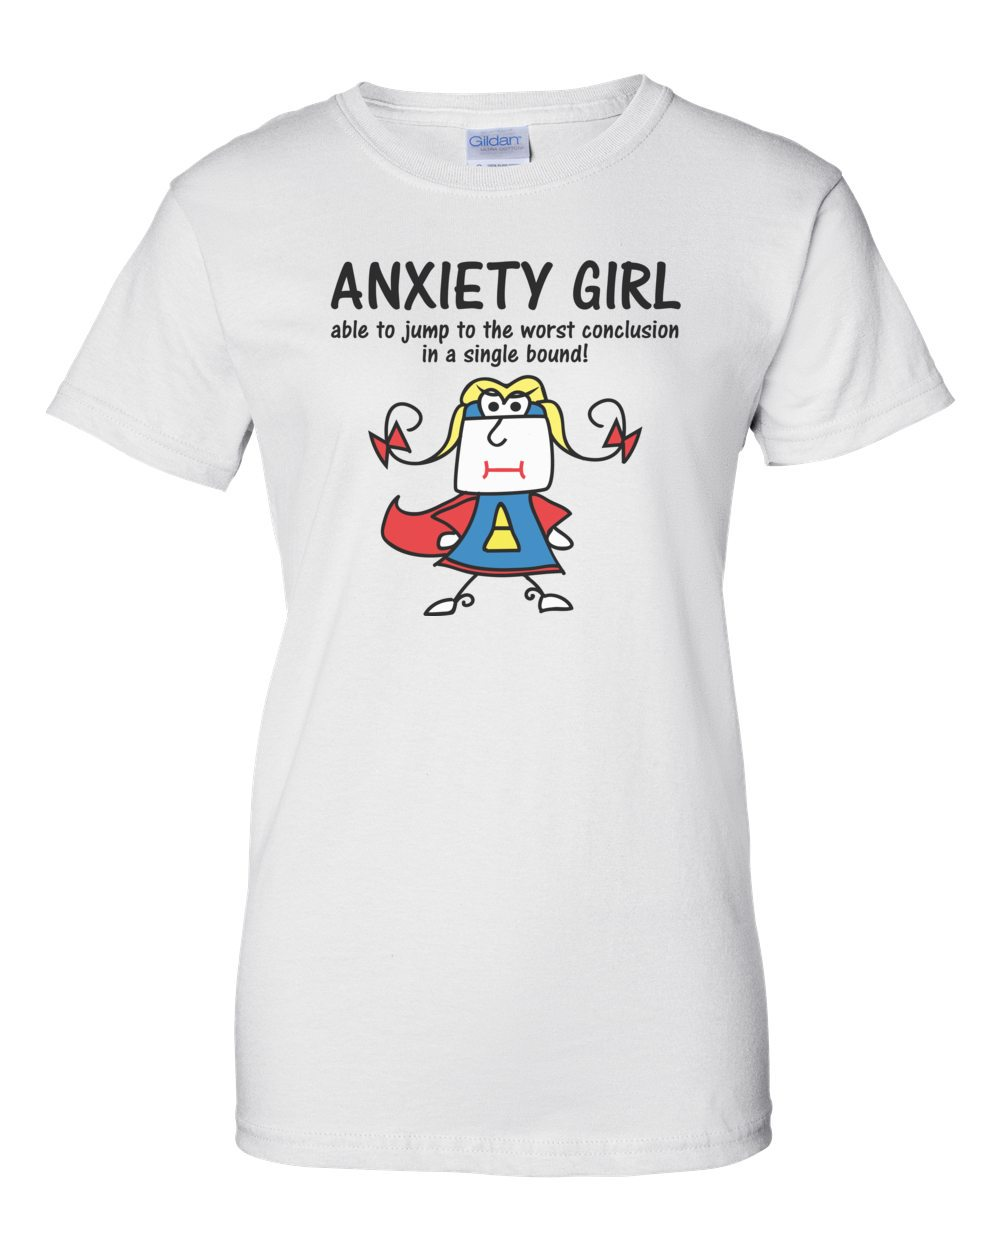 10758610 Anxiety girl - able to jump to the worst conclusion in a single bound! - Funny  T-Shirt